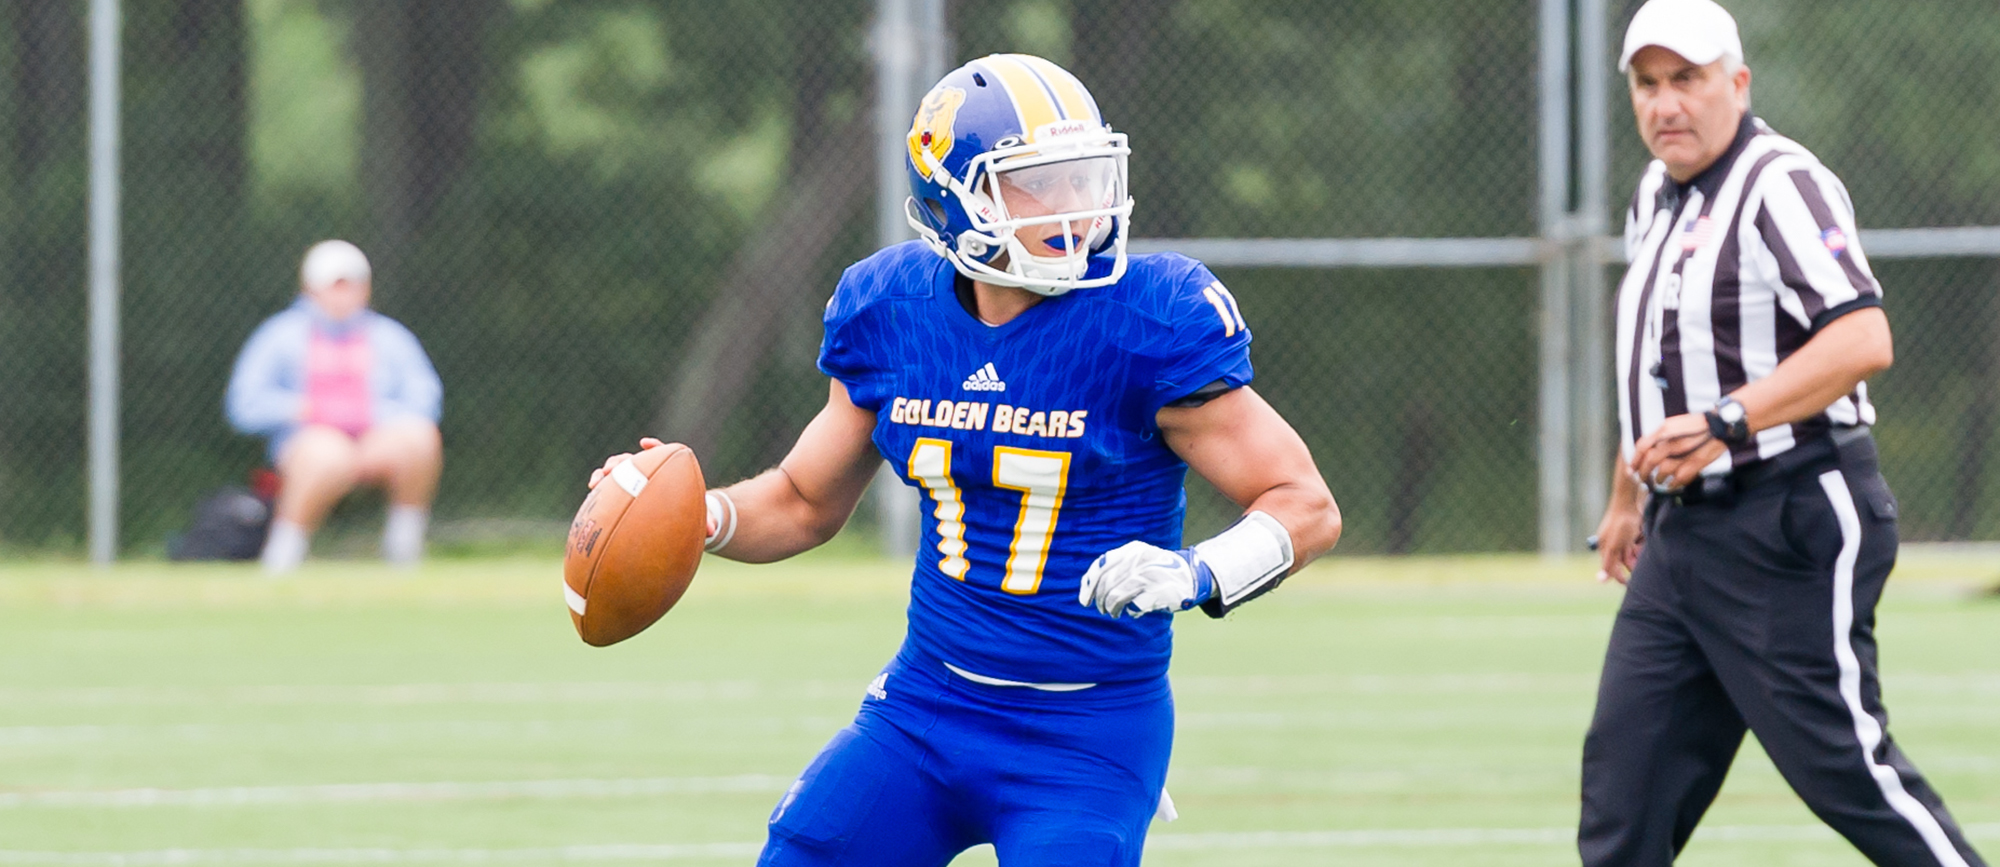 Junior quarterback Alec Coleman accounted for 285 yards of total offense and six touchdowns as the Golden Bears rolled past UNE 70-13 during Saturday's homecoming festivities. (Photo by Bryan Hewitt)